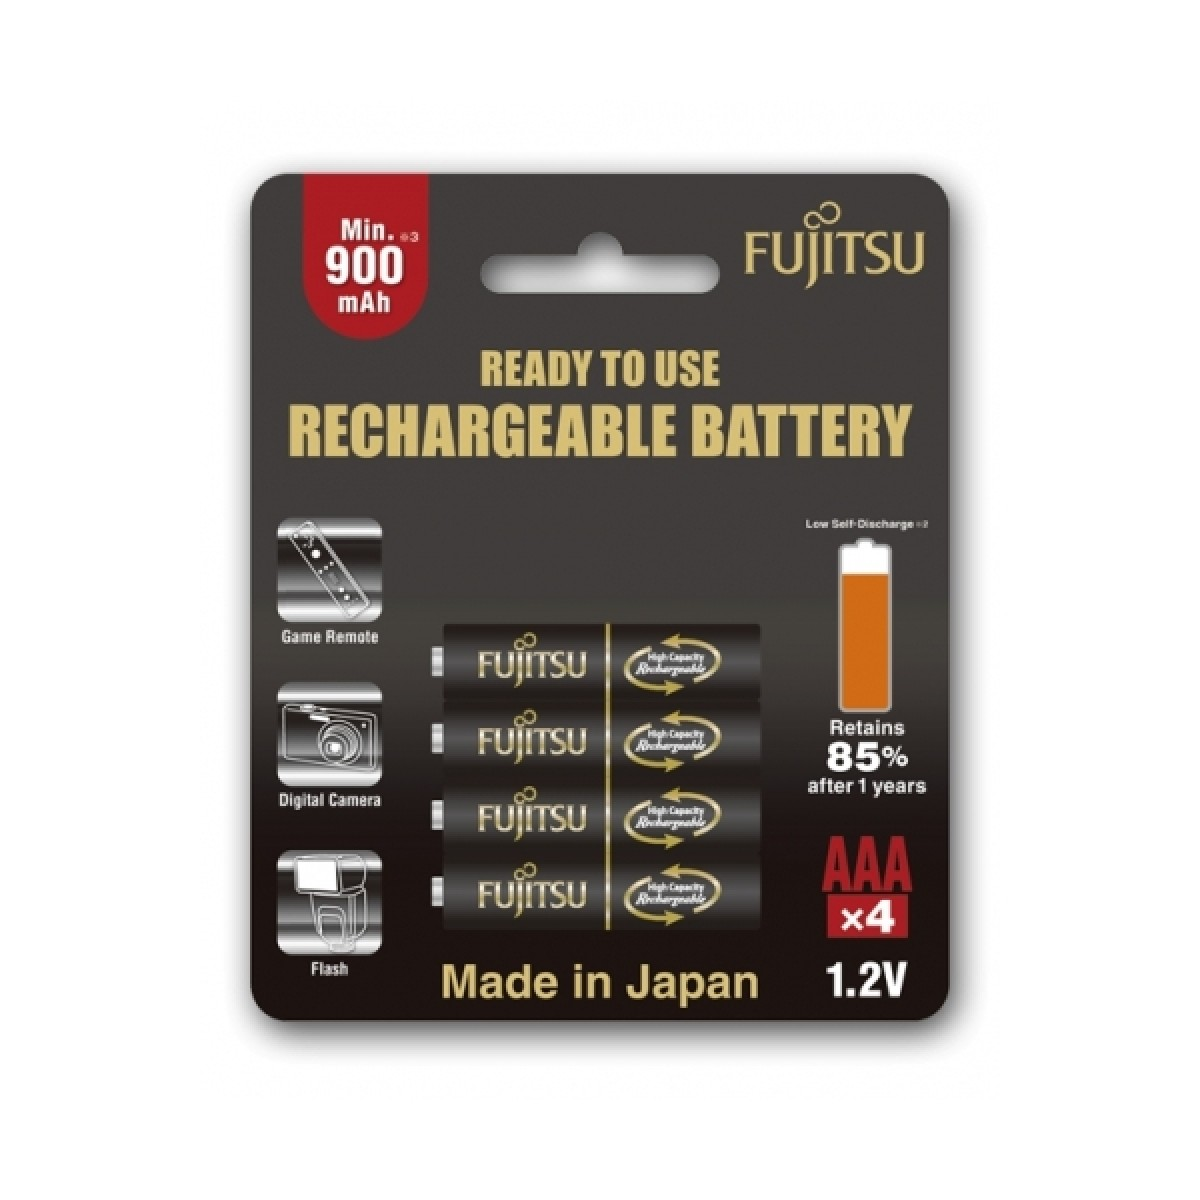 Fujitsu AAA x4 950mAh NiMH 500 Cycle Rechargeable Battery Japan